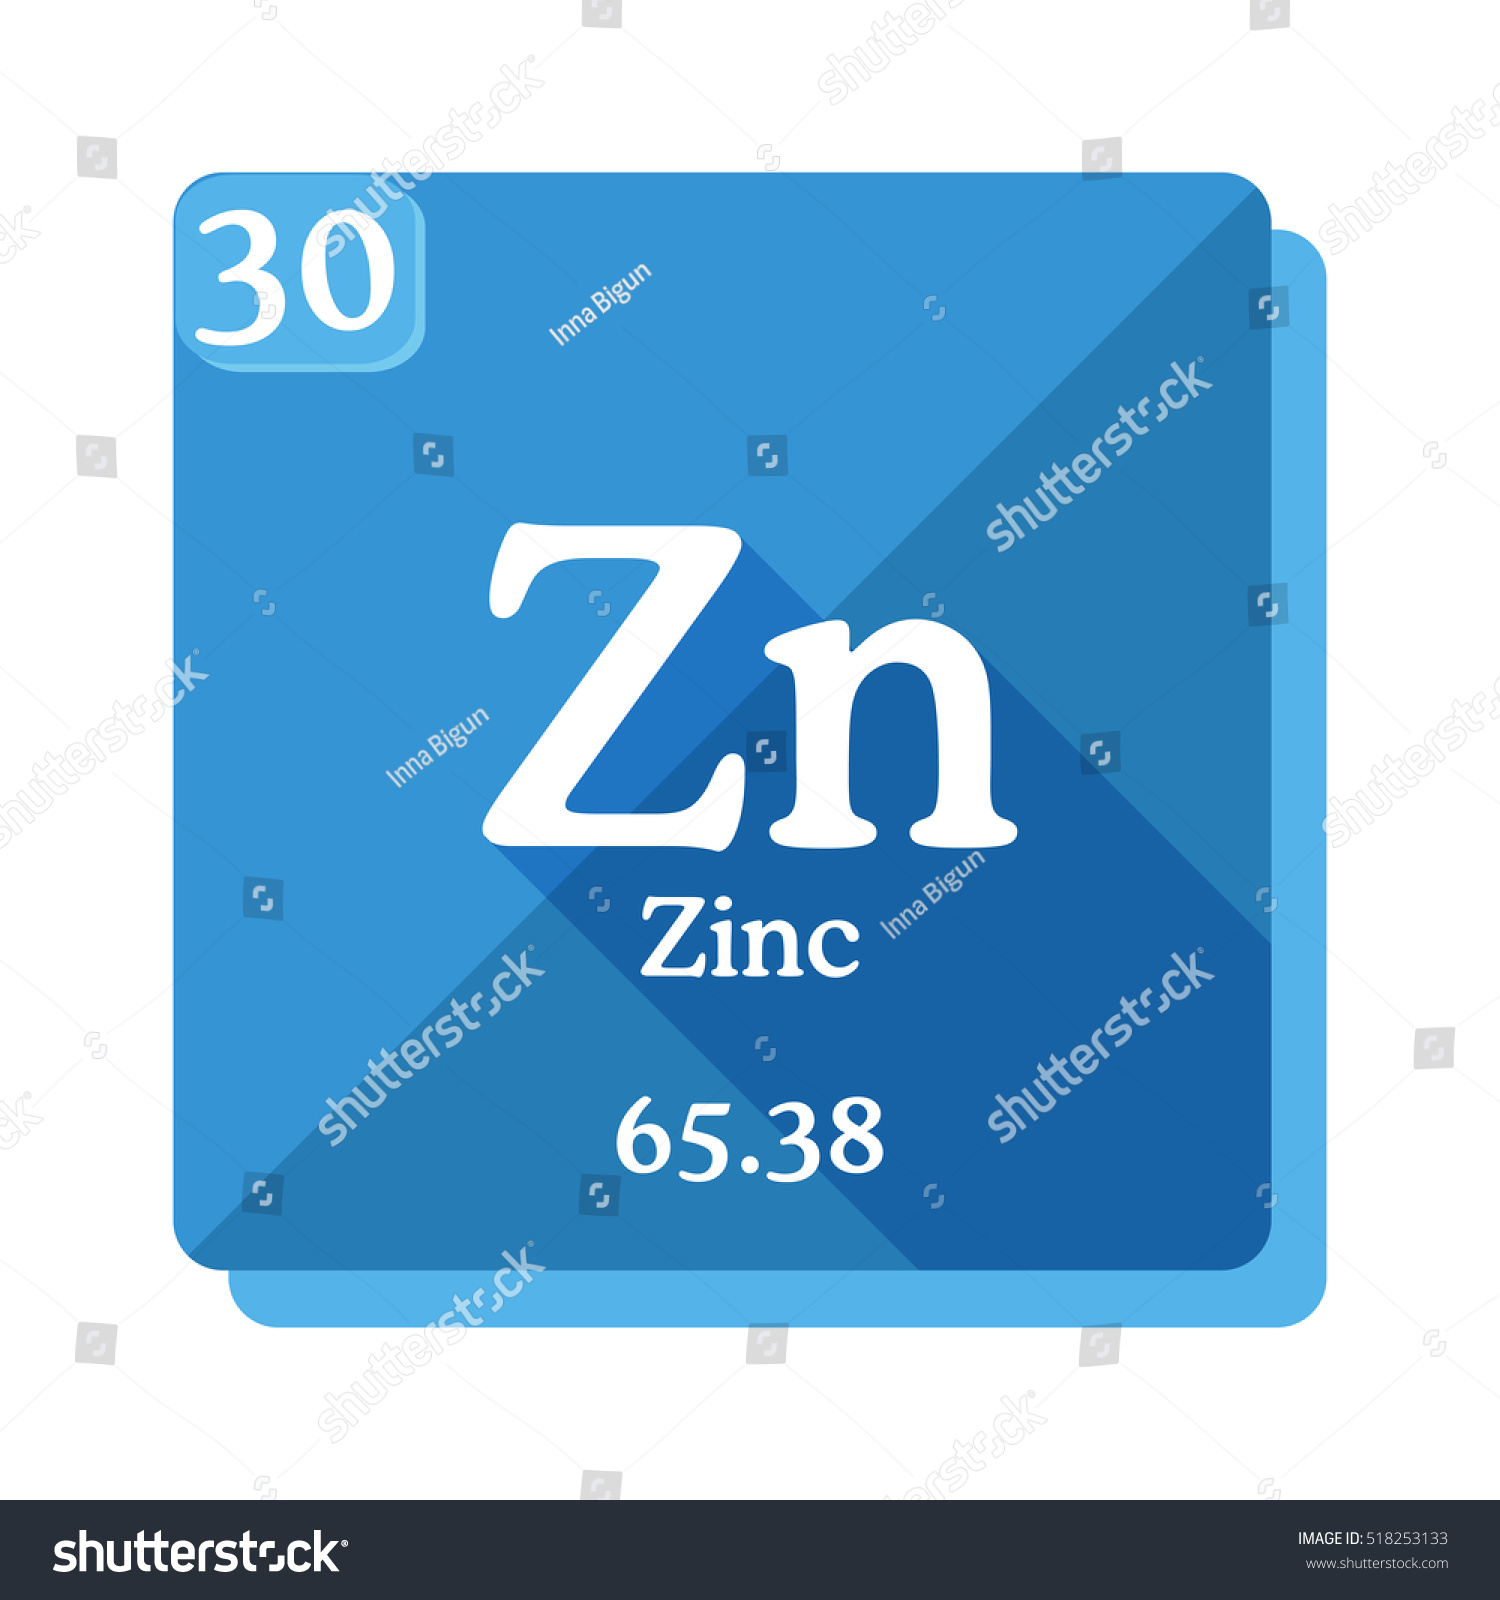 Zinc zn element periodic table flat stock vector 518253133 zinc zn element of the periodic table flat icon with long shadow gamestrikefo Image collections